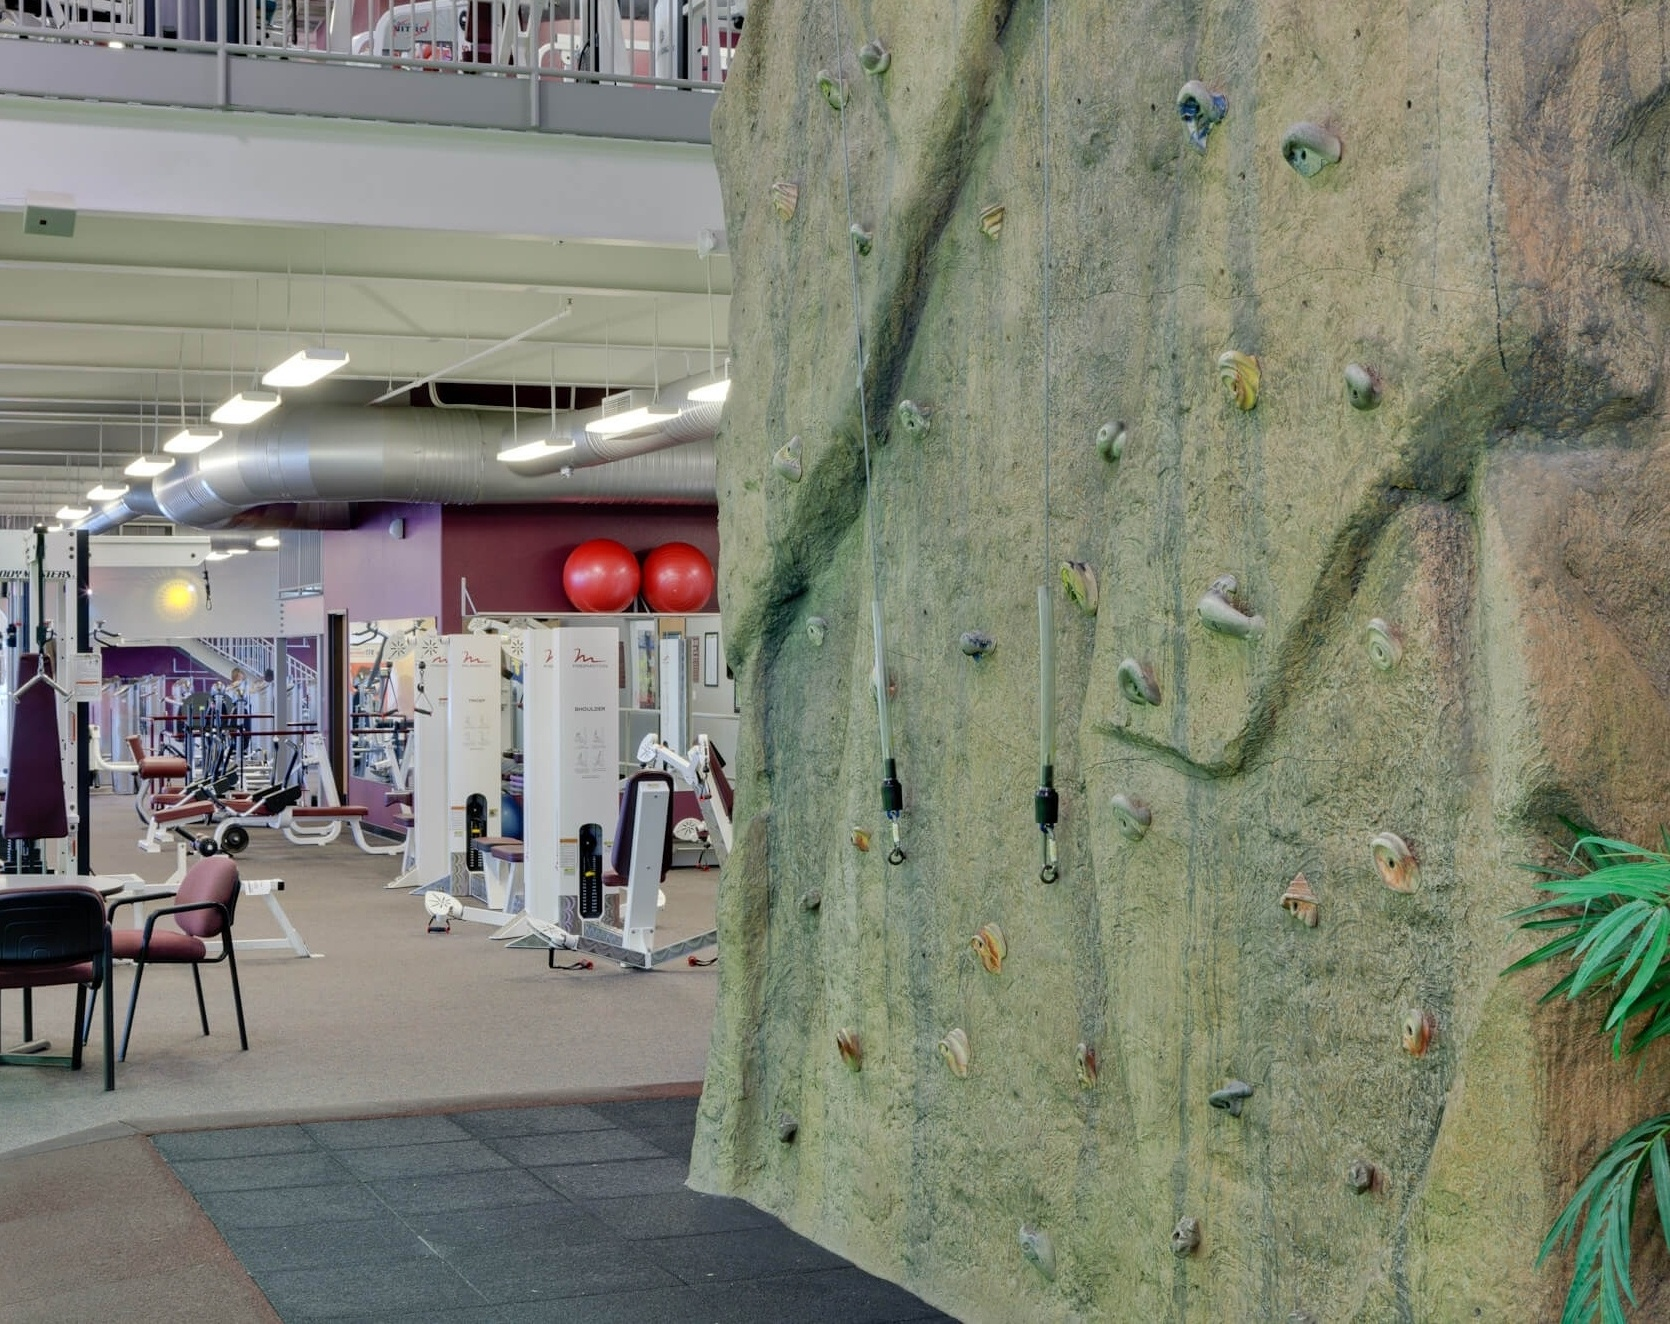 cal fit gym with indoor rock climbing wall